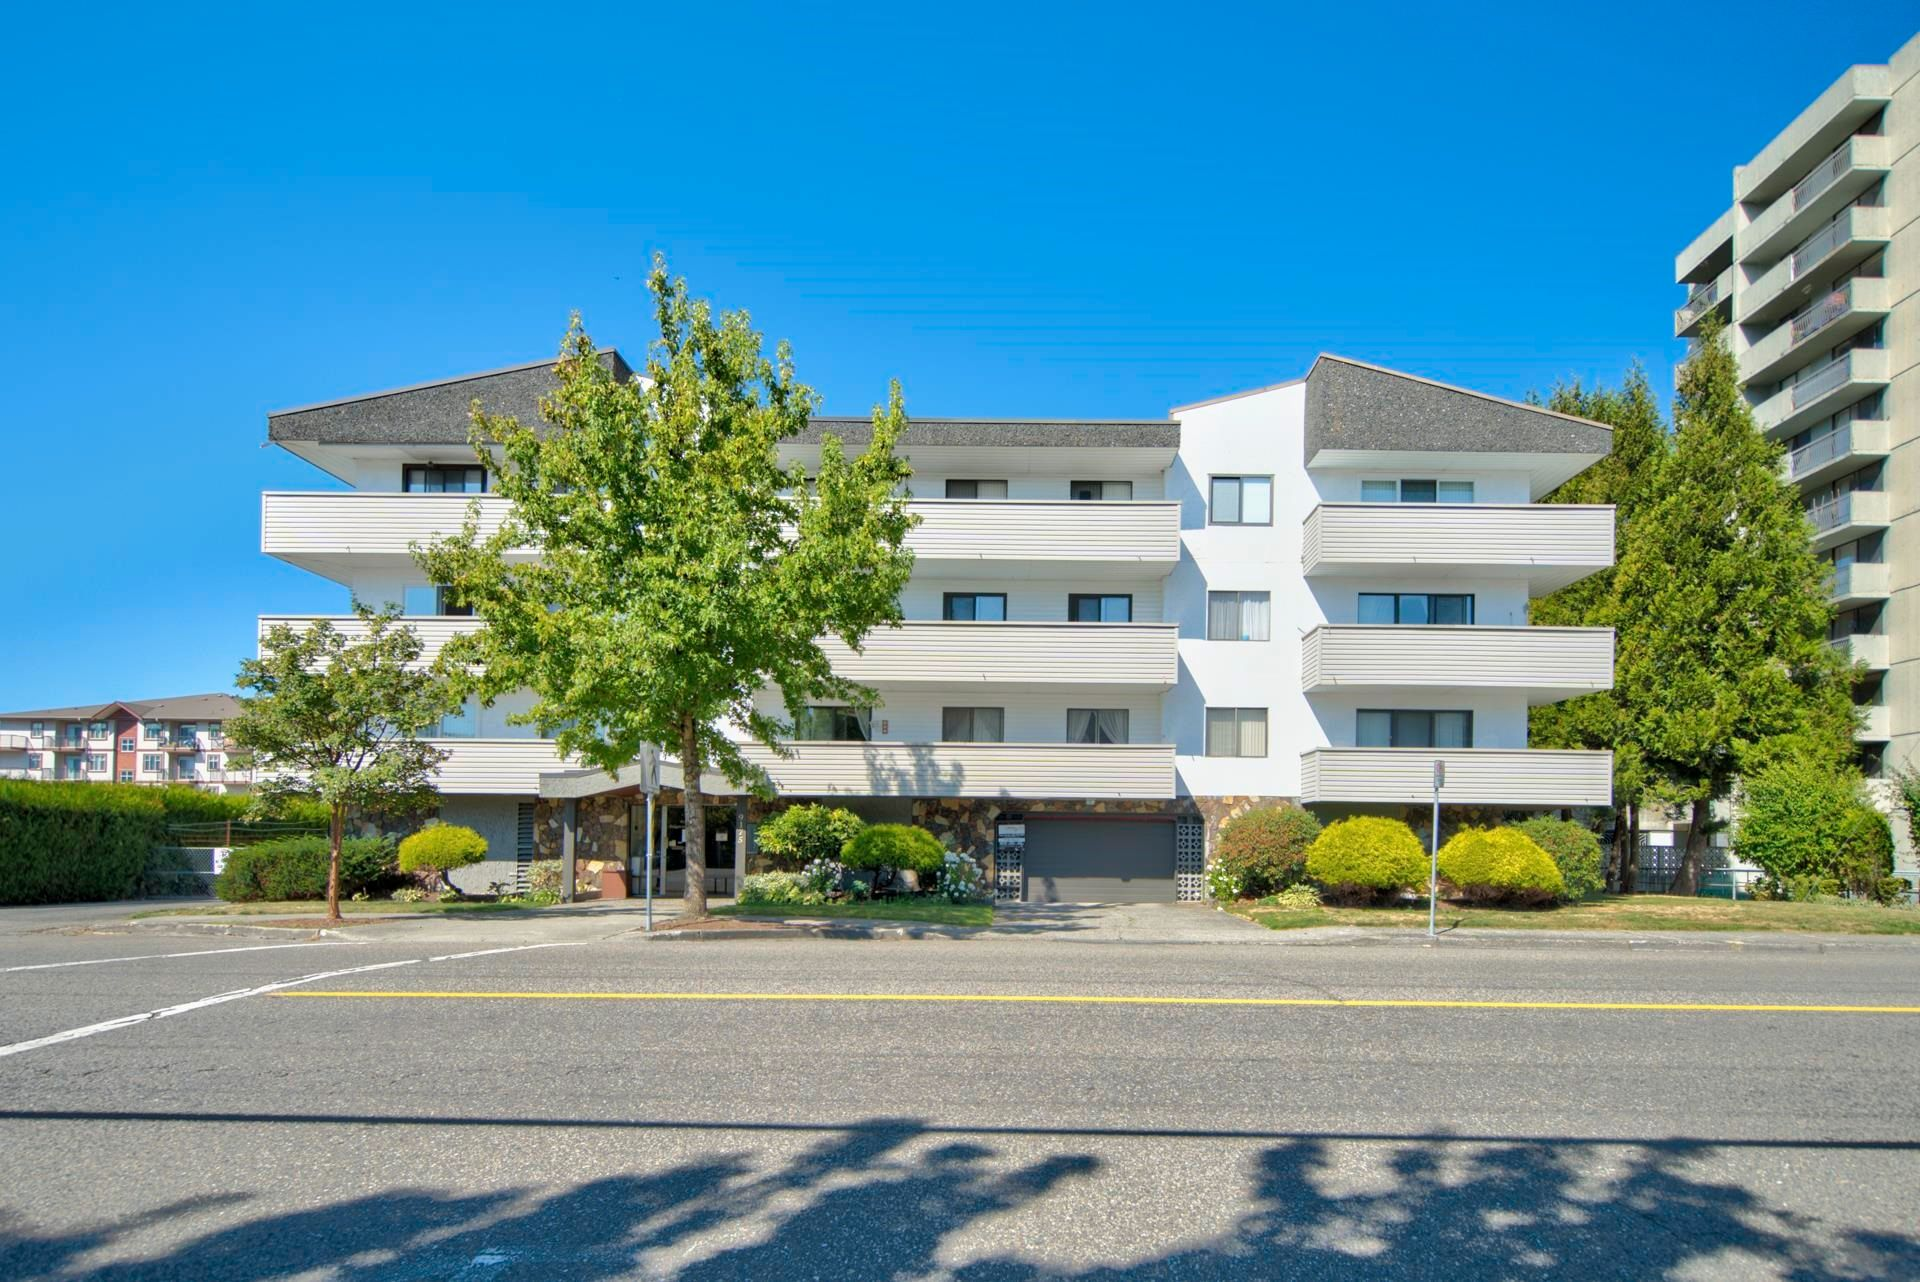 """Main Photo: 202 9175 MARY Street in Chilliwack: Chilliwack W Young-Well Condo for sale in """"RIDGEWOOD COURT"""" : MLS®# R2614445"""